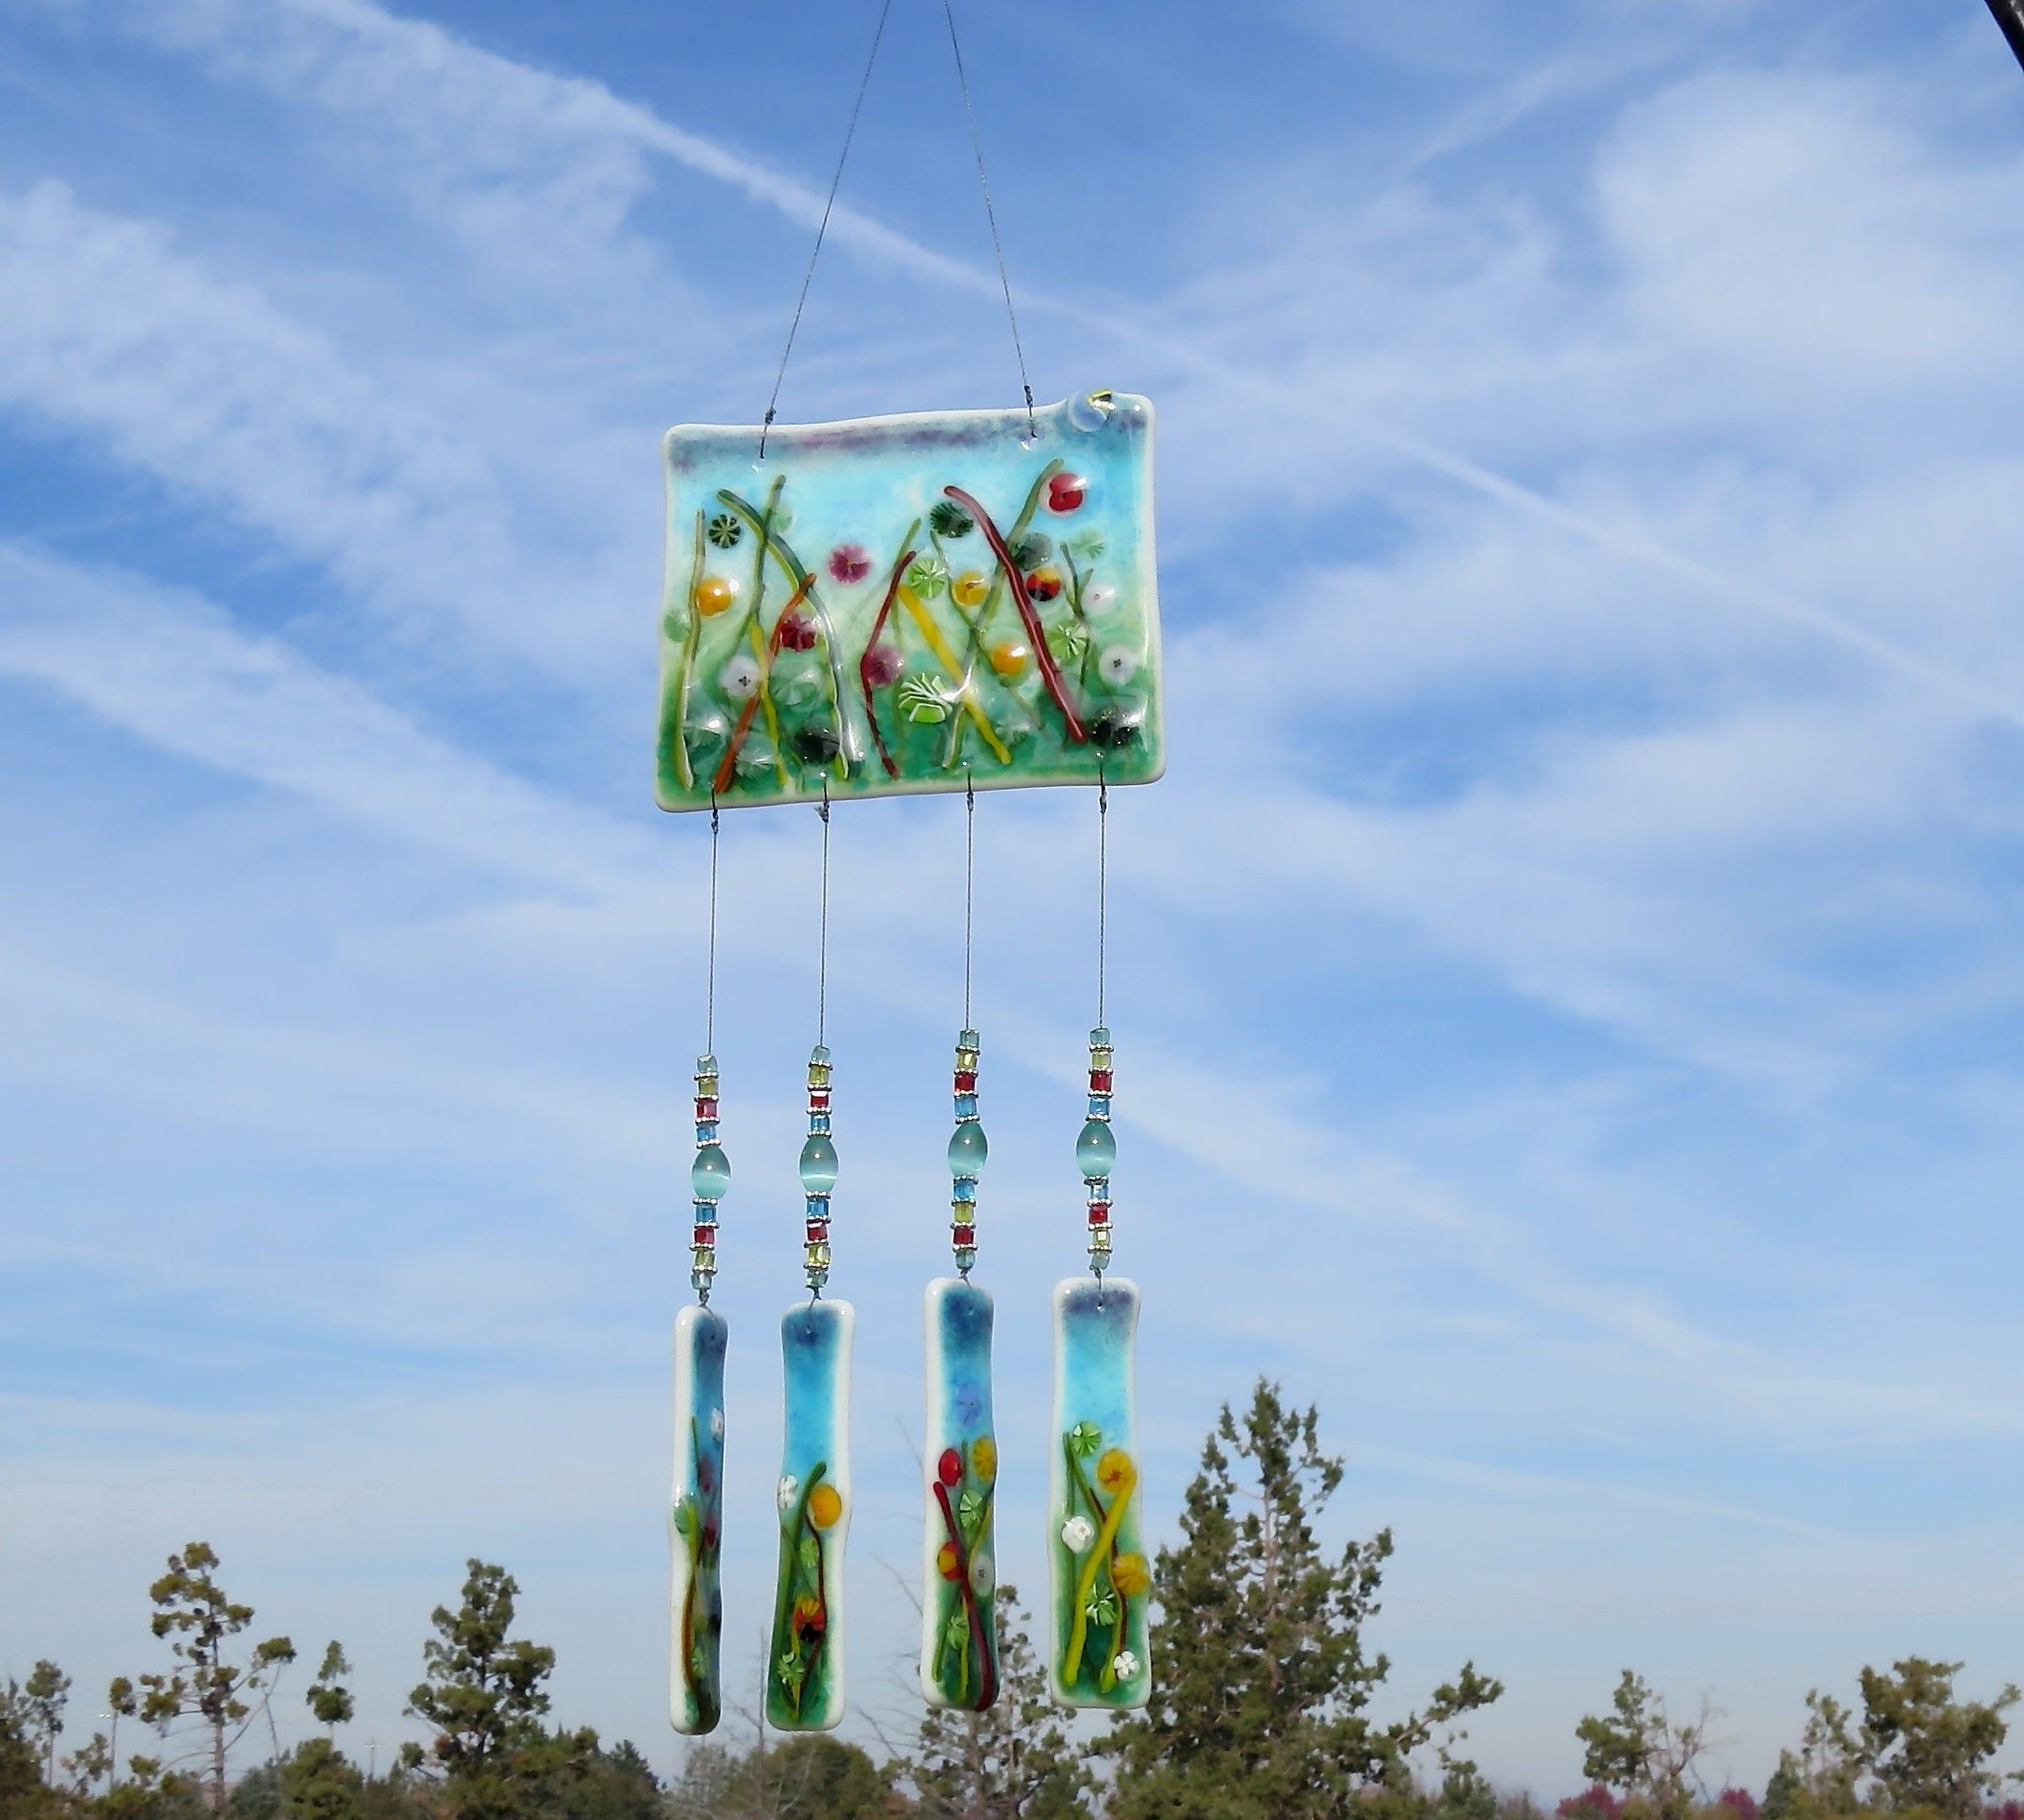 This Beautiful Wind Chime Will Add Color To Any Area Of Your Yard Or Patio It Will Make The Sweetest Sound Wit With Images Wind Chimes Wine Bottle Wind Chimes Garden